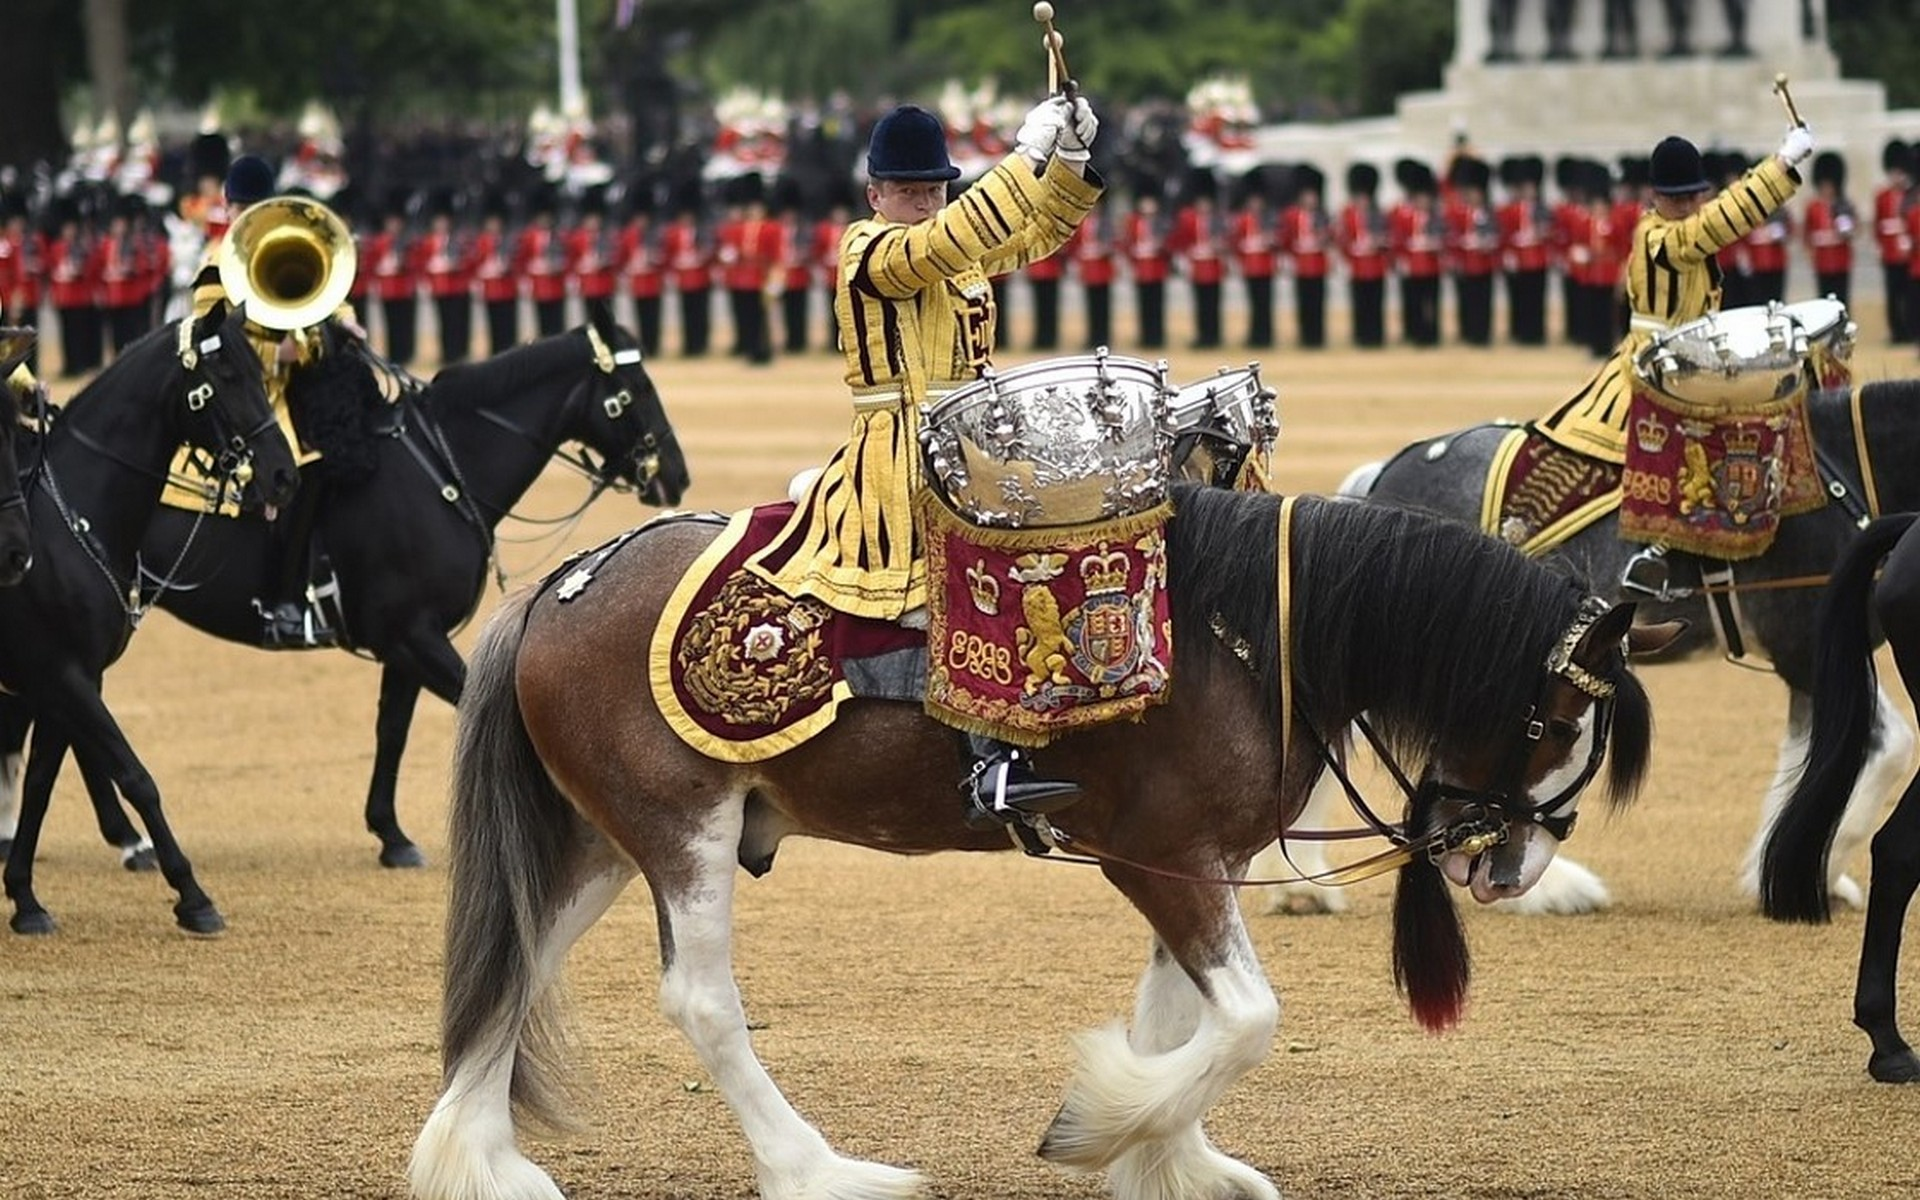 Trooping of the Colour, London in June